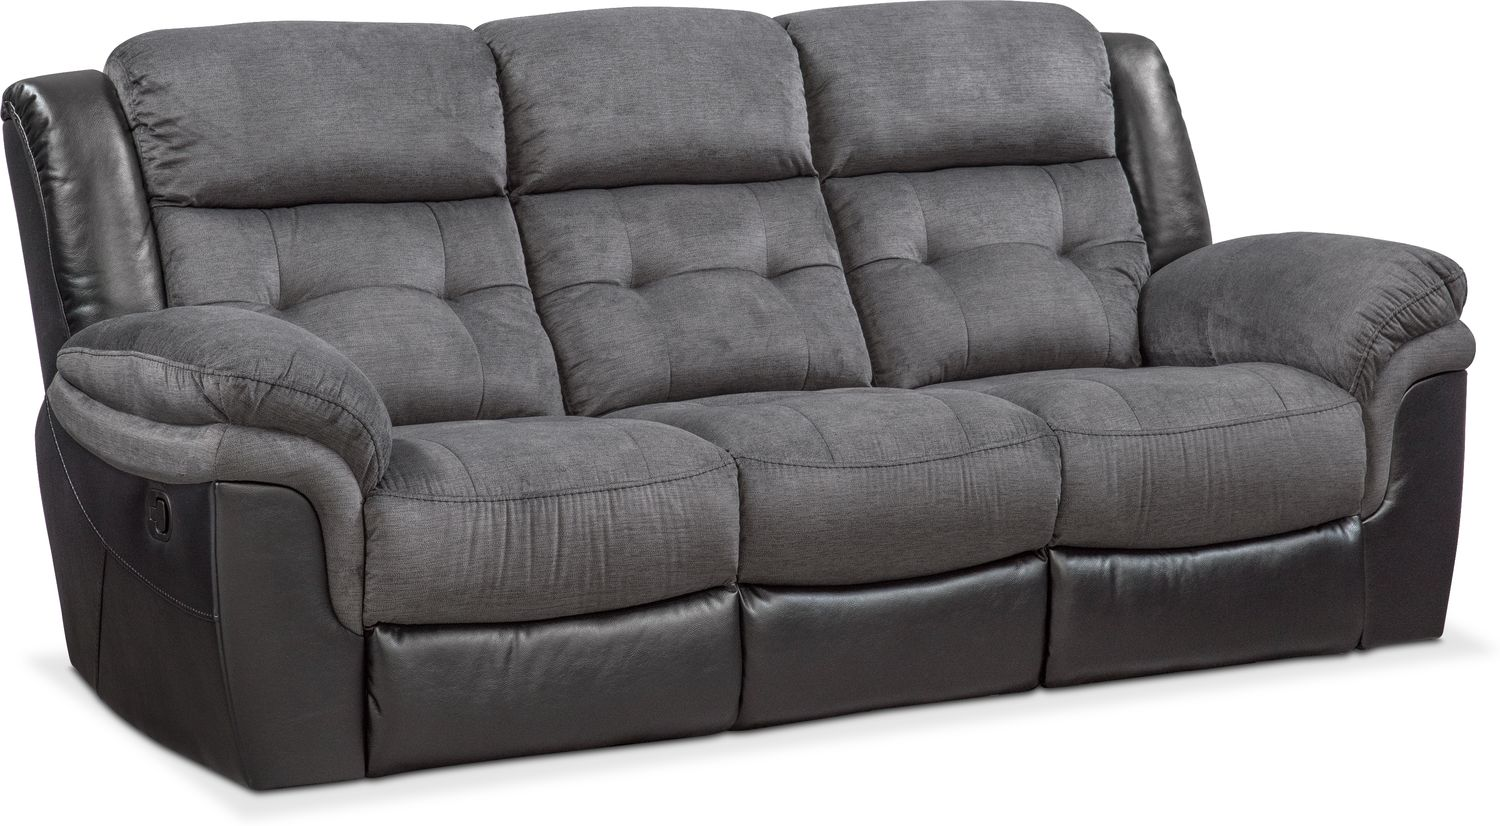 Living Room Furniture - Tacoma Manual Reclining Sofa